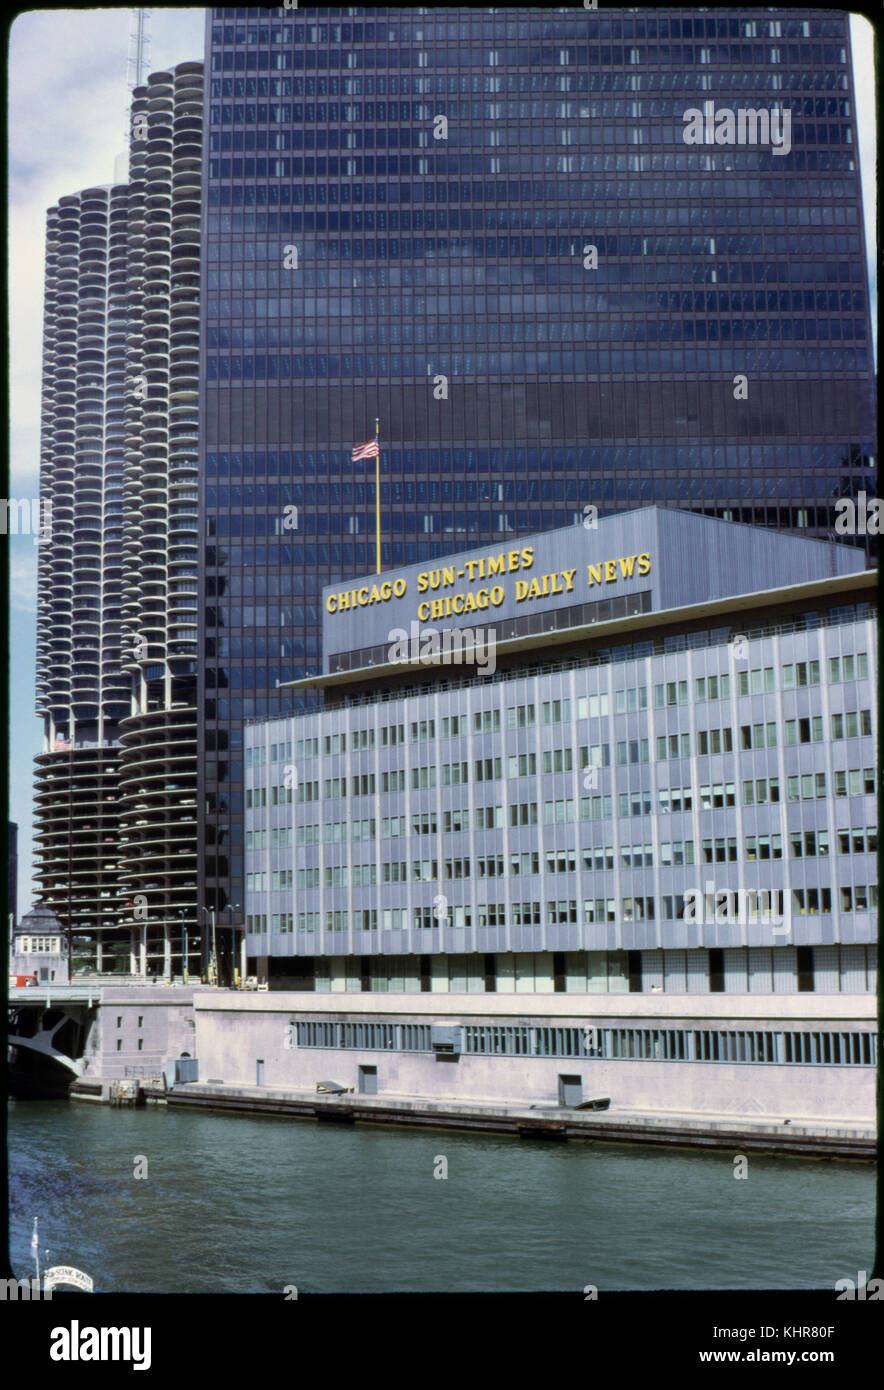 Chicago Sun-Times, Chicago Daily News Building with Marina Towers in Background along Chicago River, Chicago, Illinois, - Stock Image